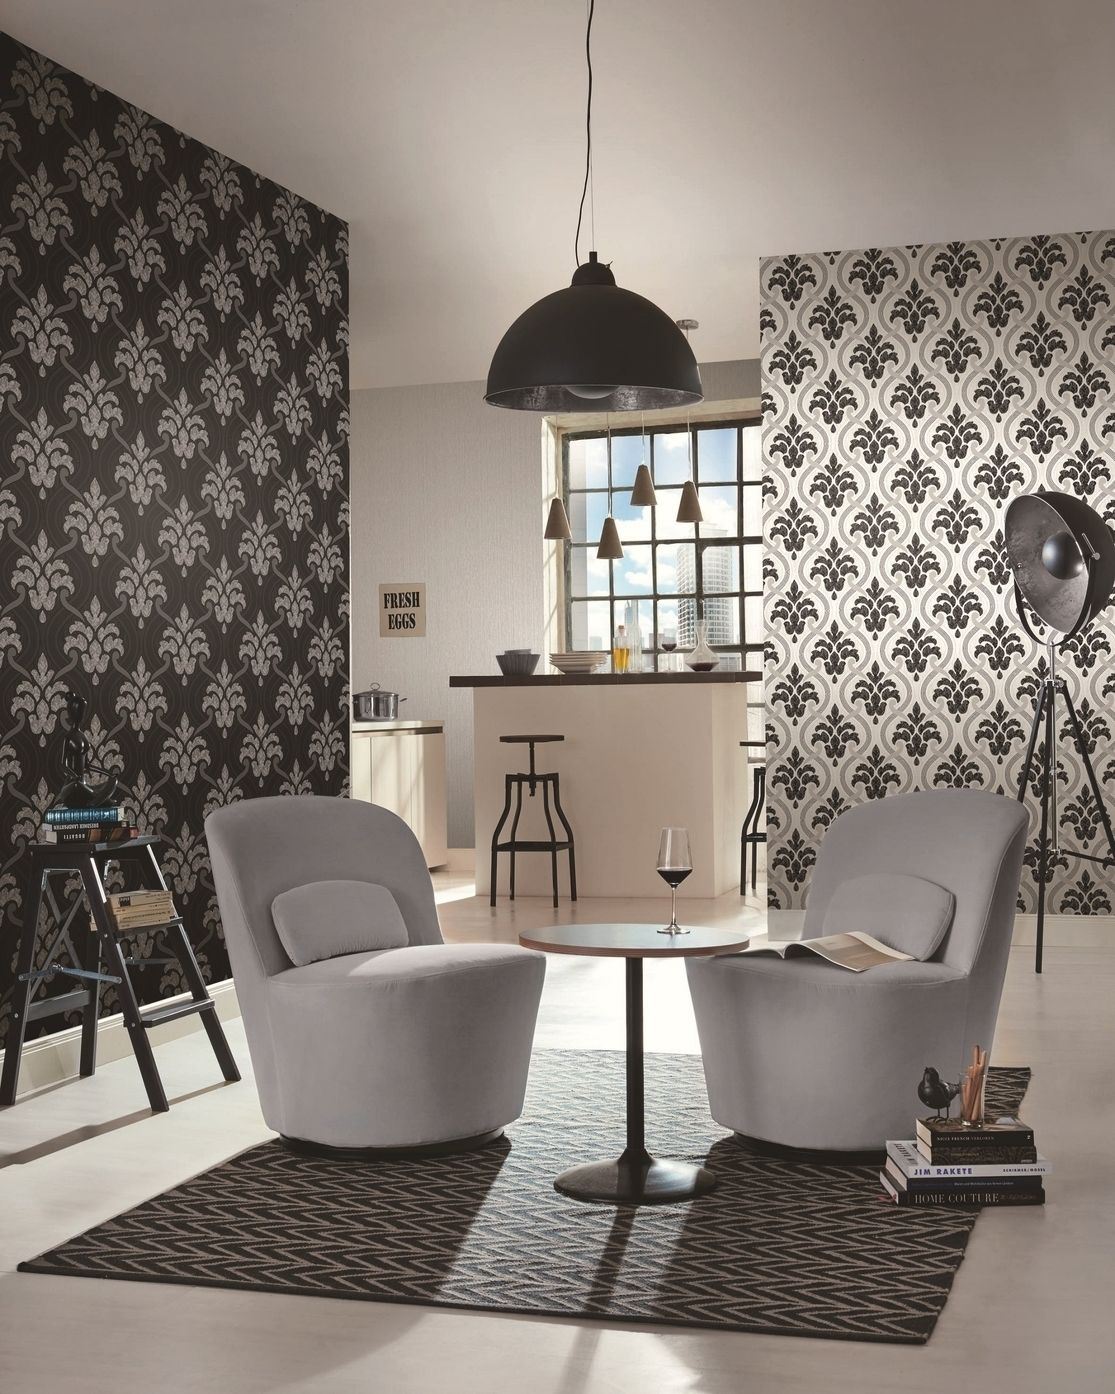 vlies tapete barock muster ornament schwarz grau silber metallic glitzer kaufen bei joratrend e k. Black Bedroom Furniture Sets. Home Design Ideas